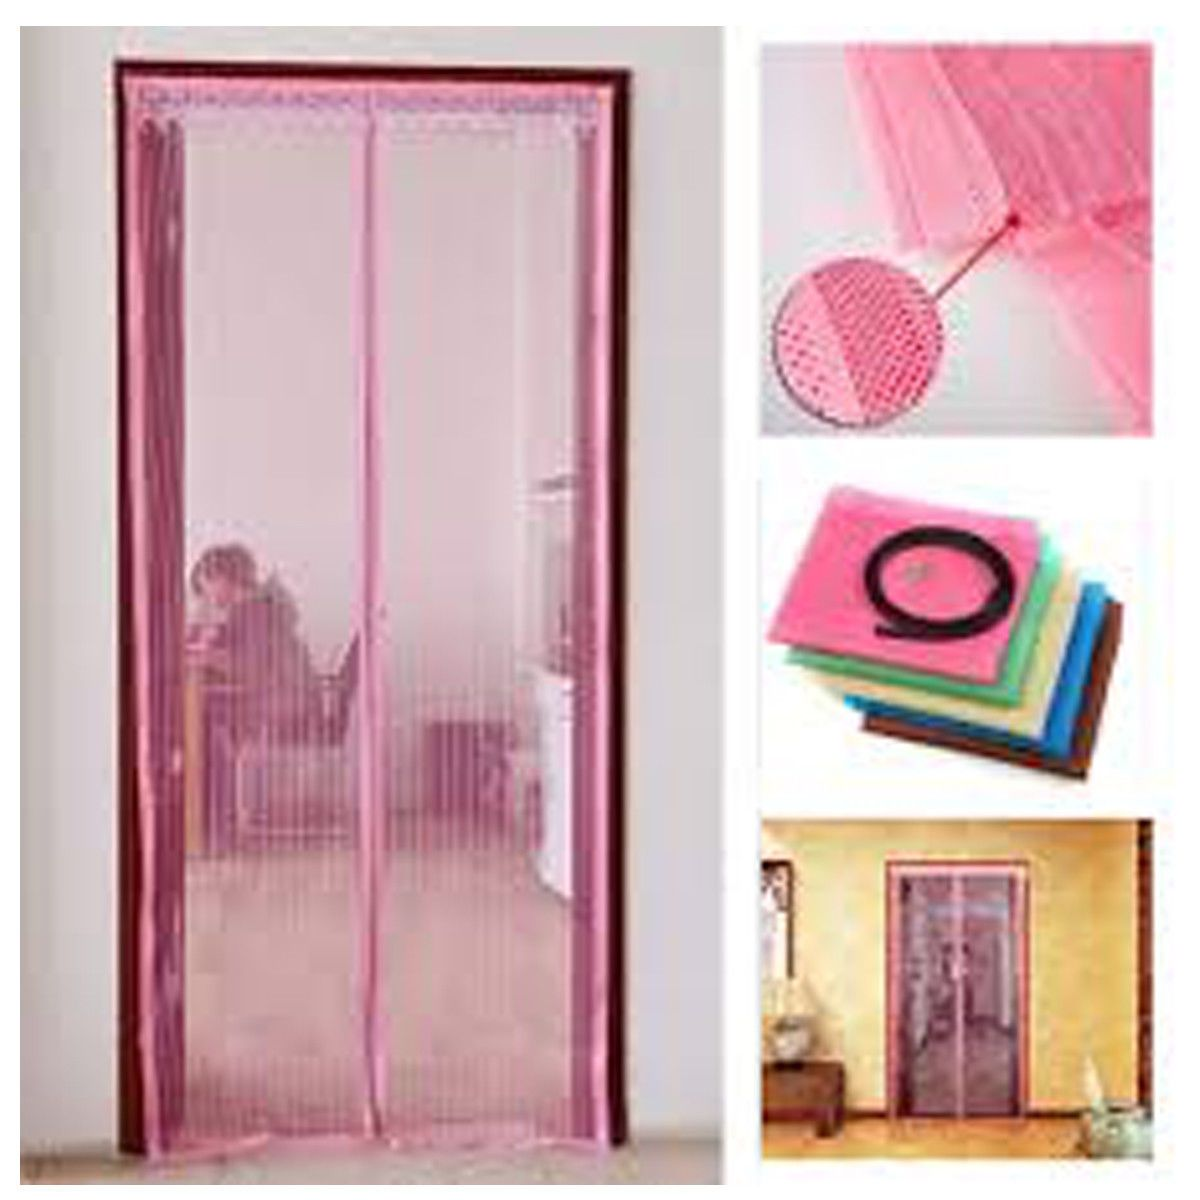 Magic Mesh Mosquito Net, Mosquito Nets & Insect Screens - Image 2